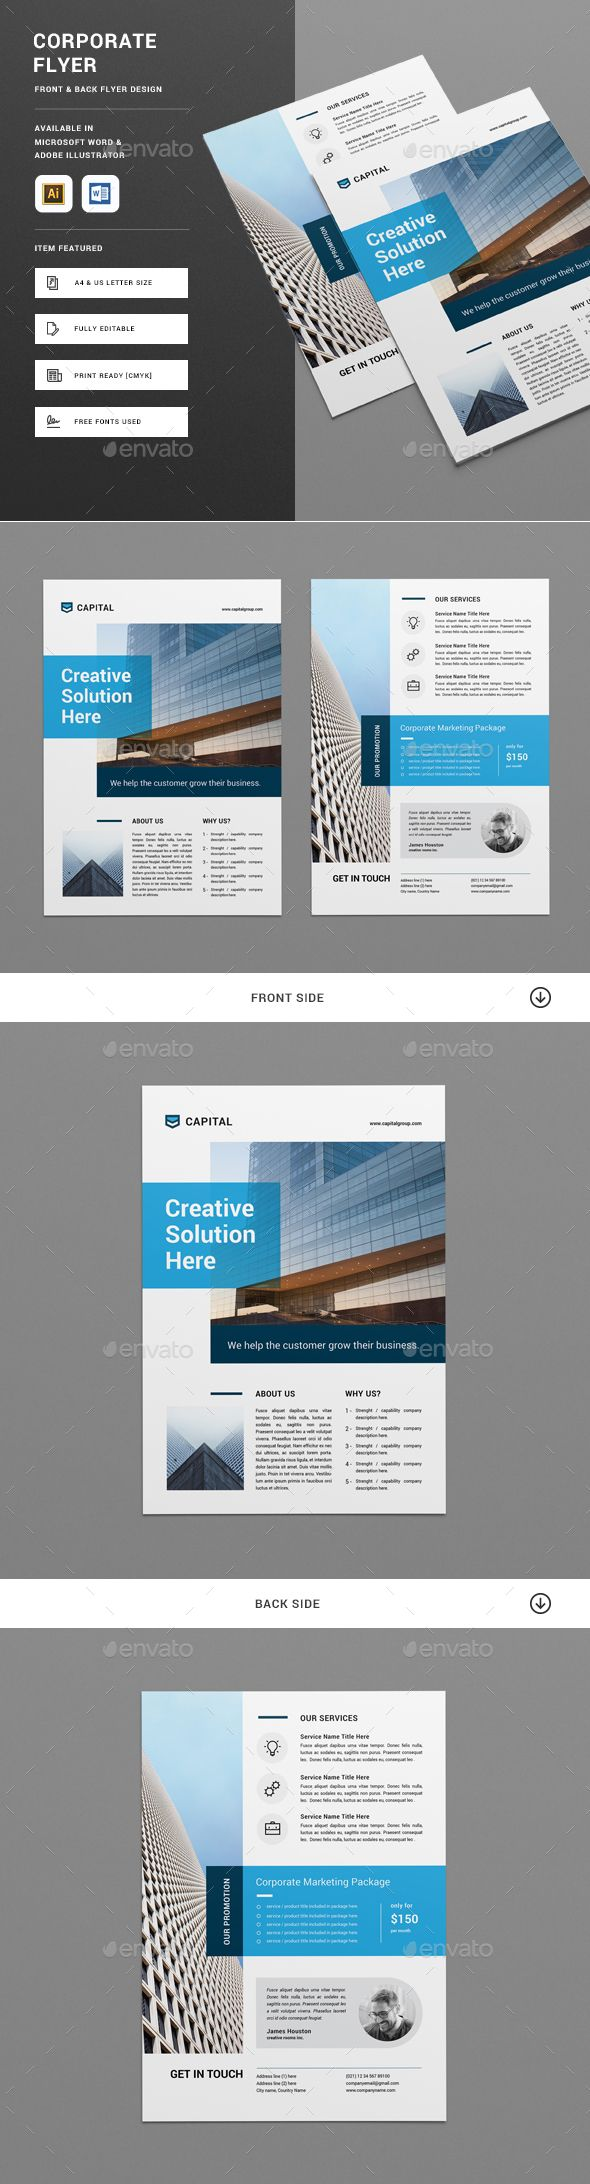 473 best Brochures / Flyers images on Pinterest | Brochures ...